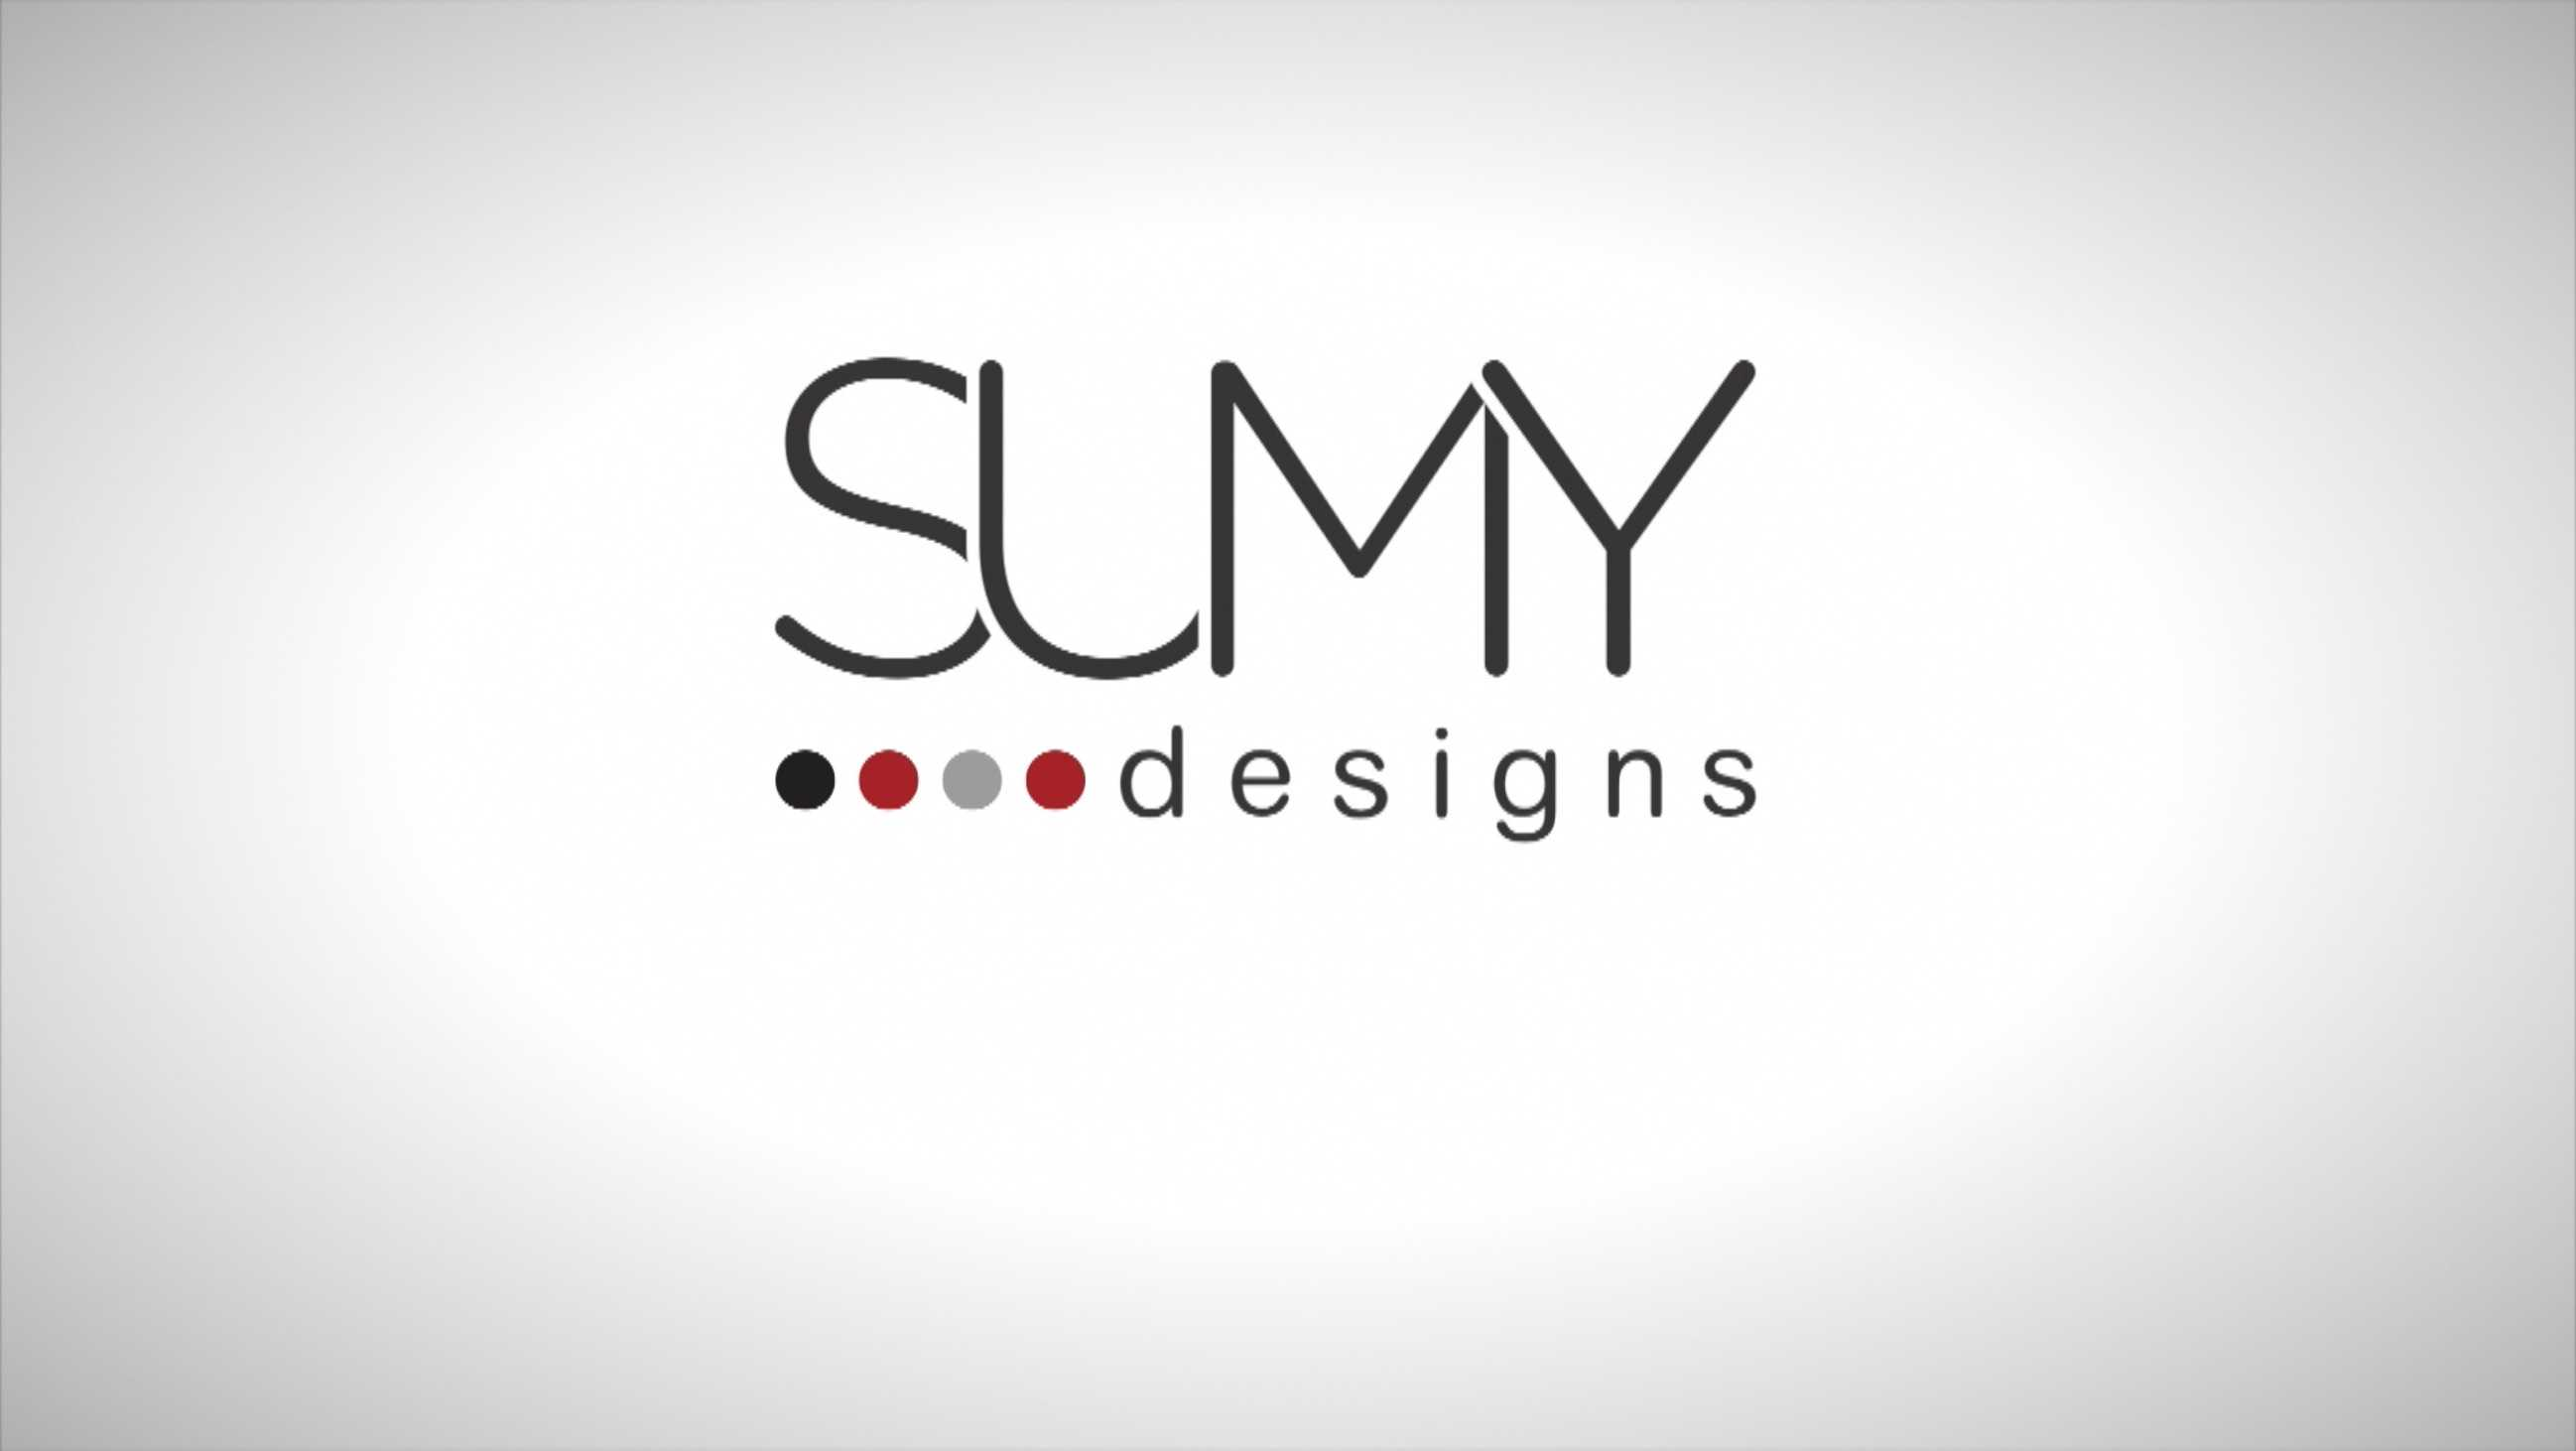 Sumy: a selection of sites